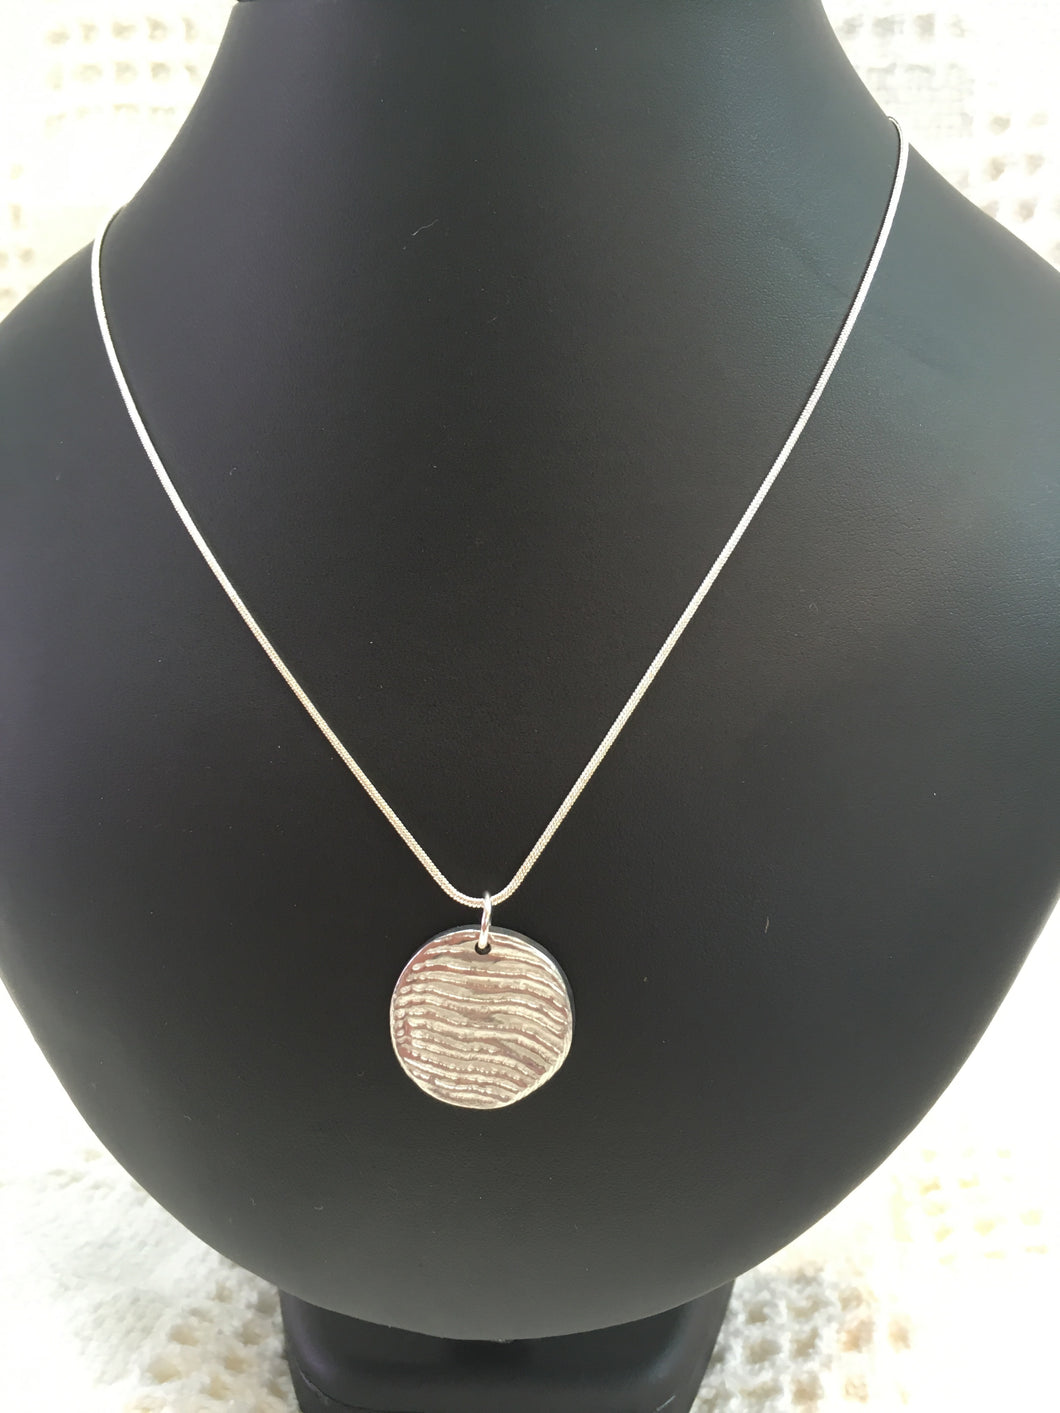 Handmade pewter necklace